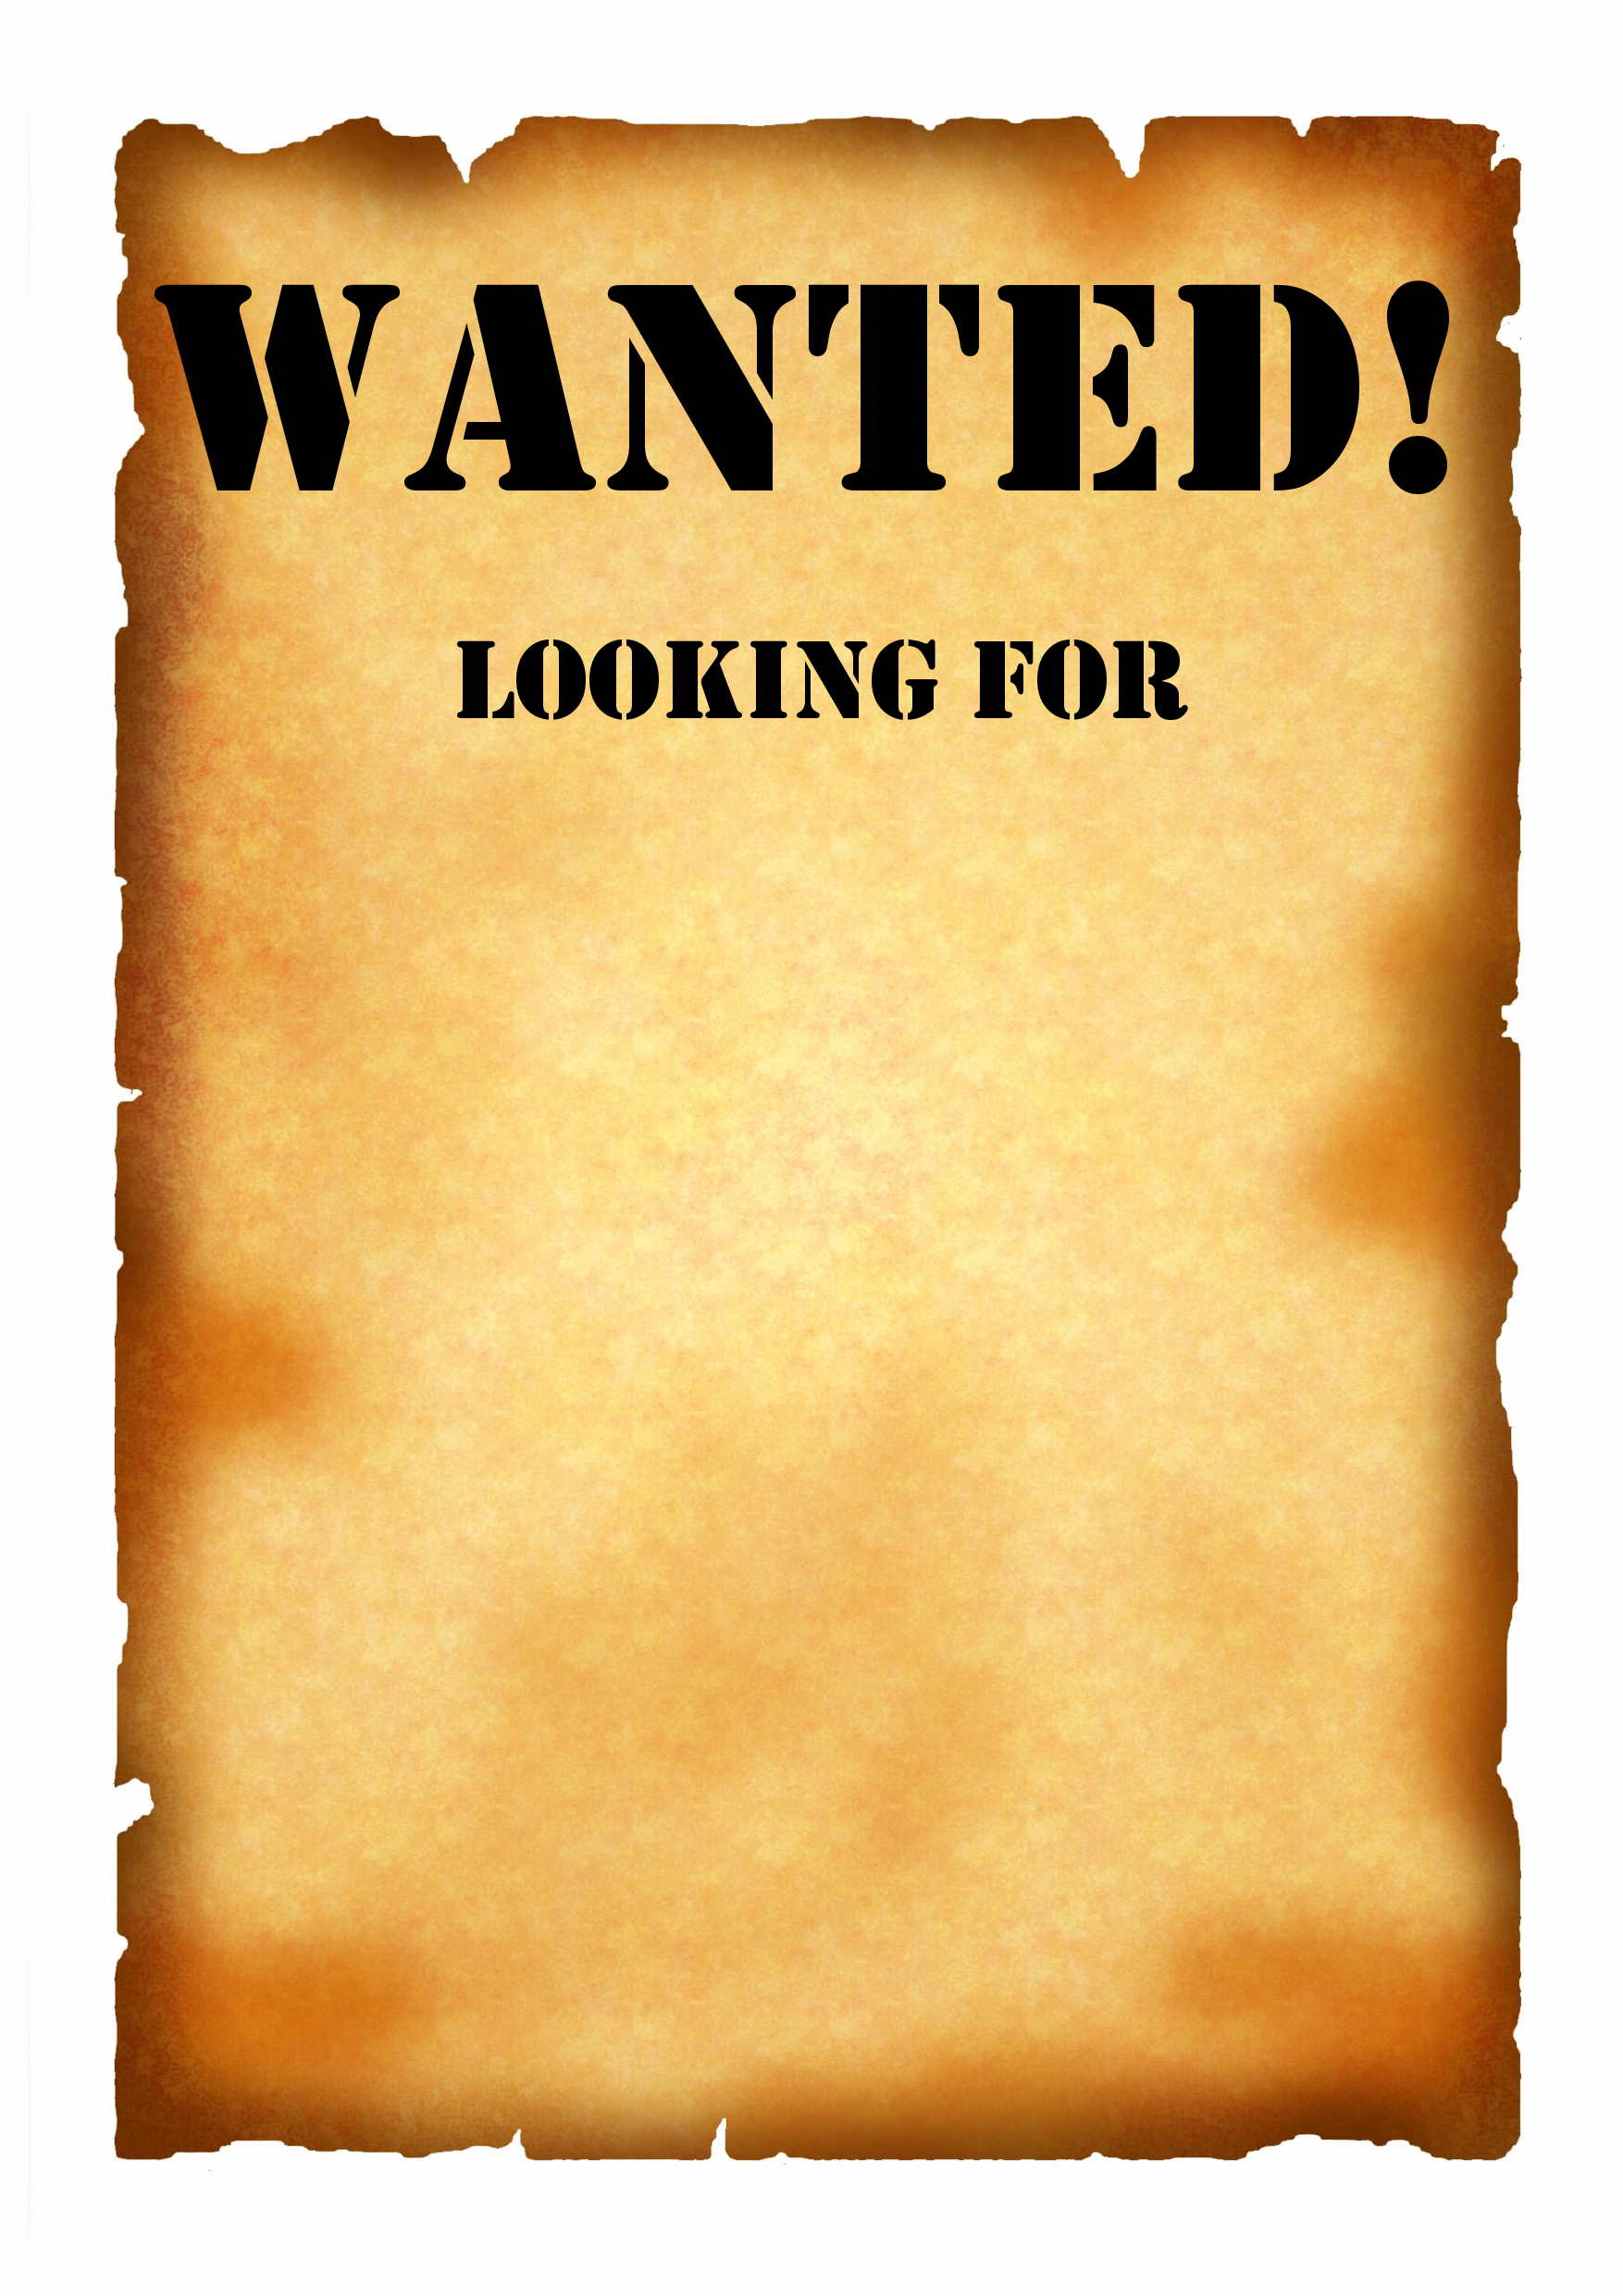 Free Wanted Poster Template Beautiful Wanted Poster Template 2 by Lizzy2008